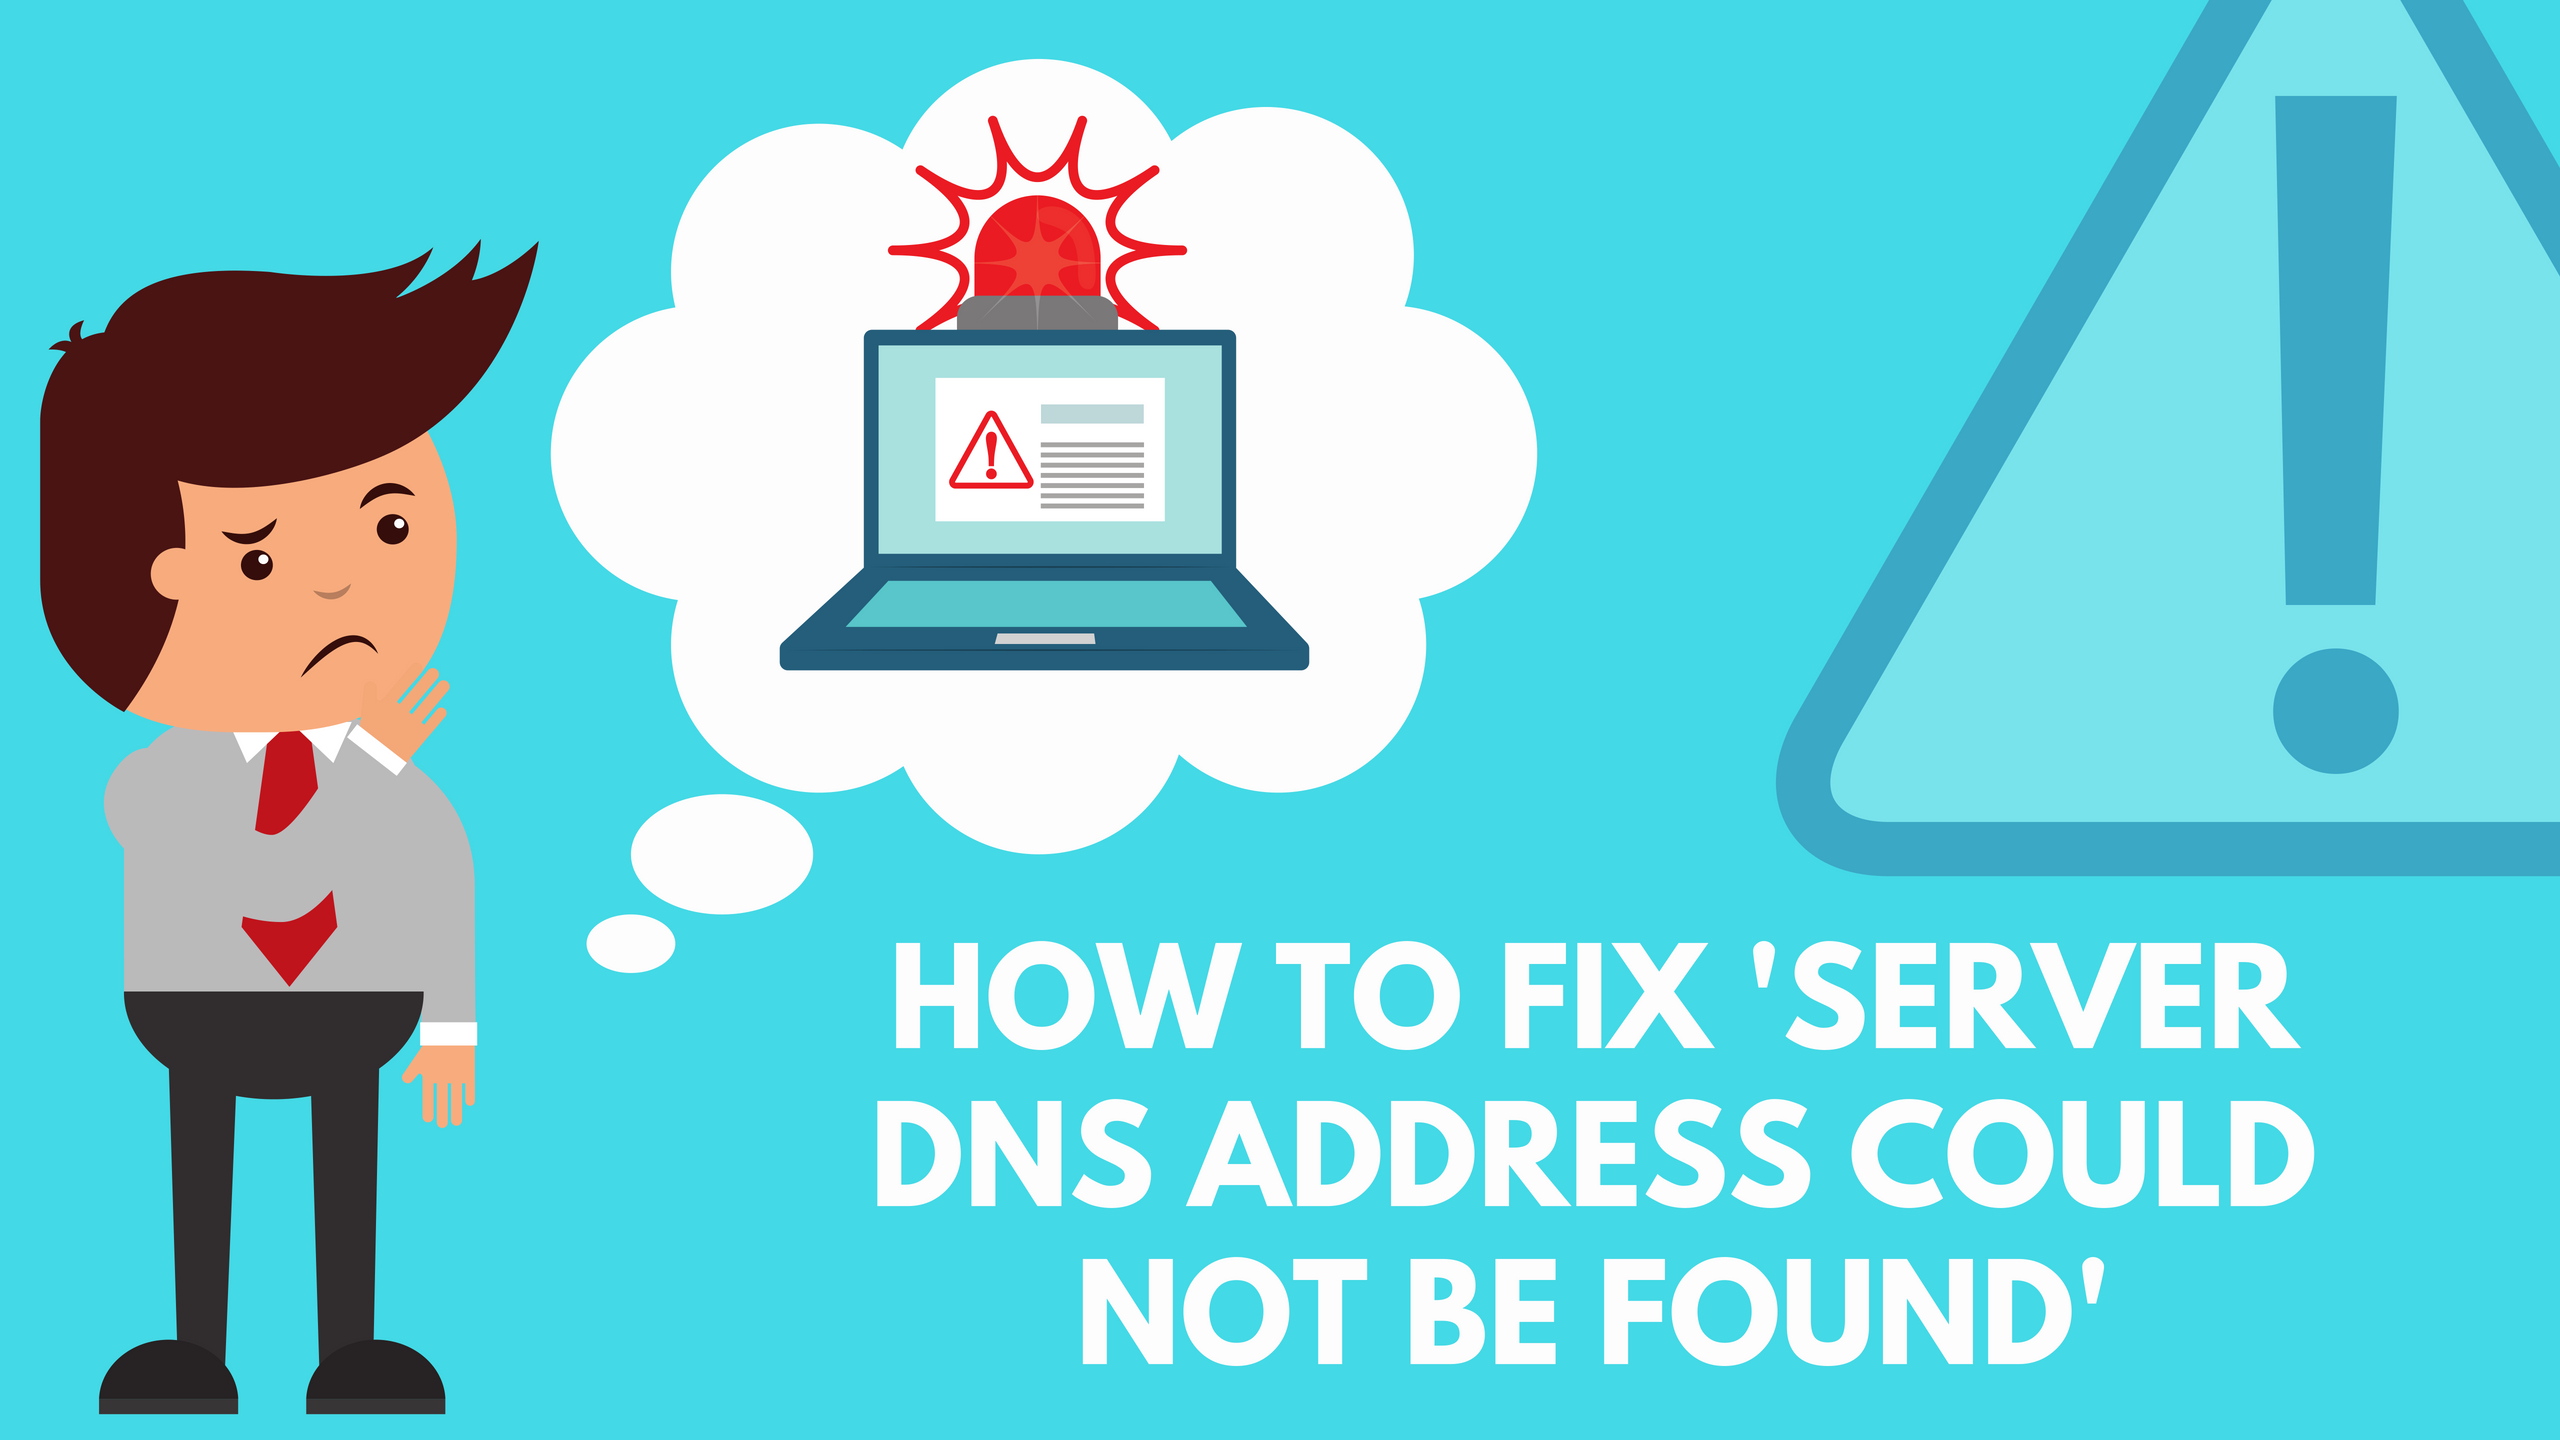 dns address could not found